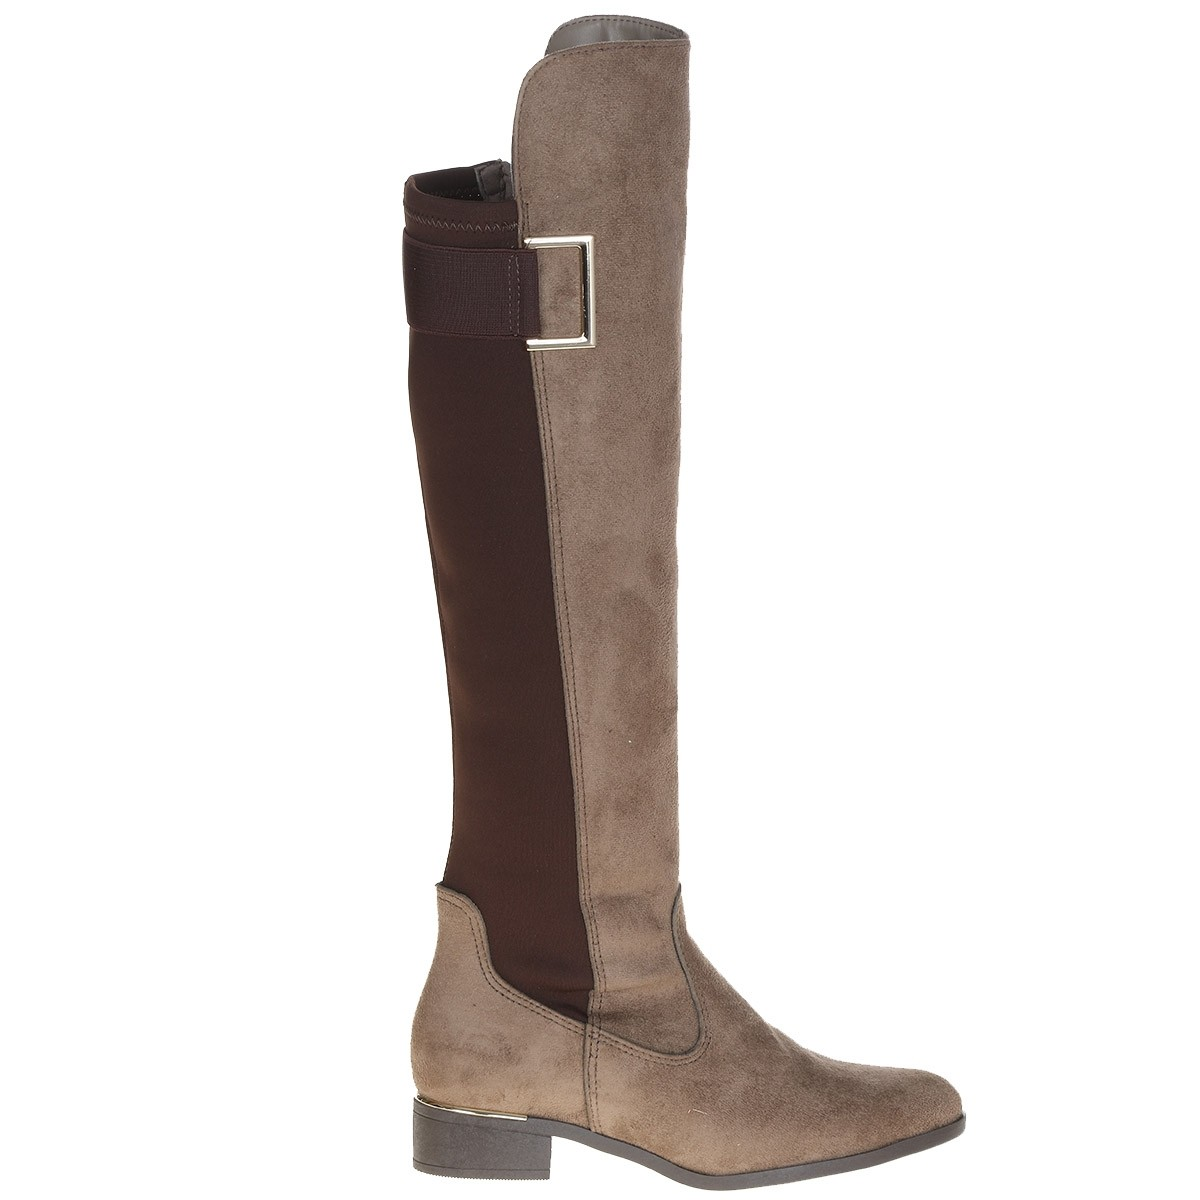 Bota Feminina Via Marte Over Knee 16-7202 marrom